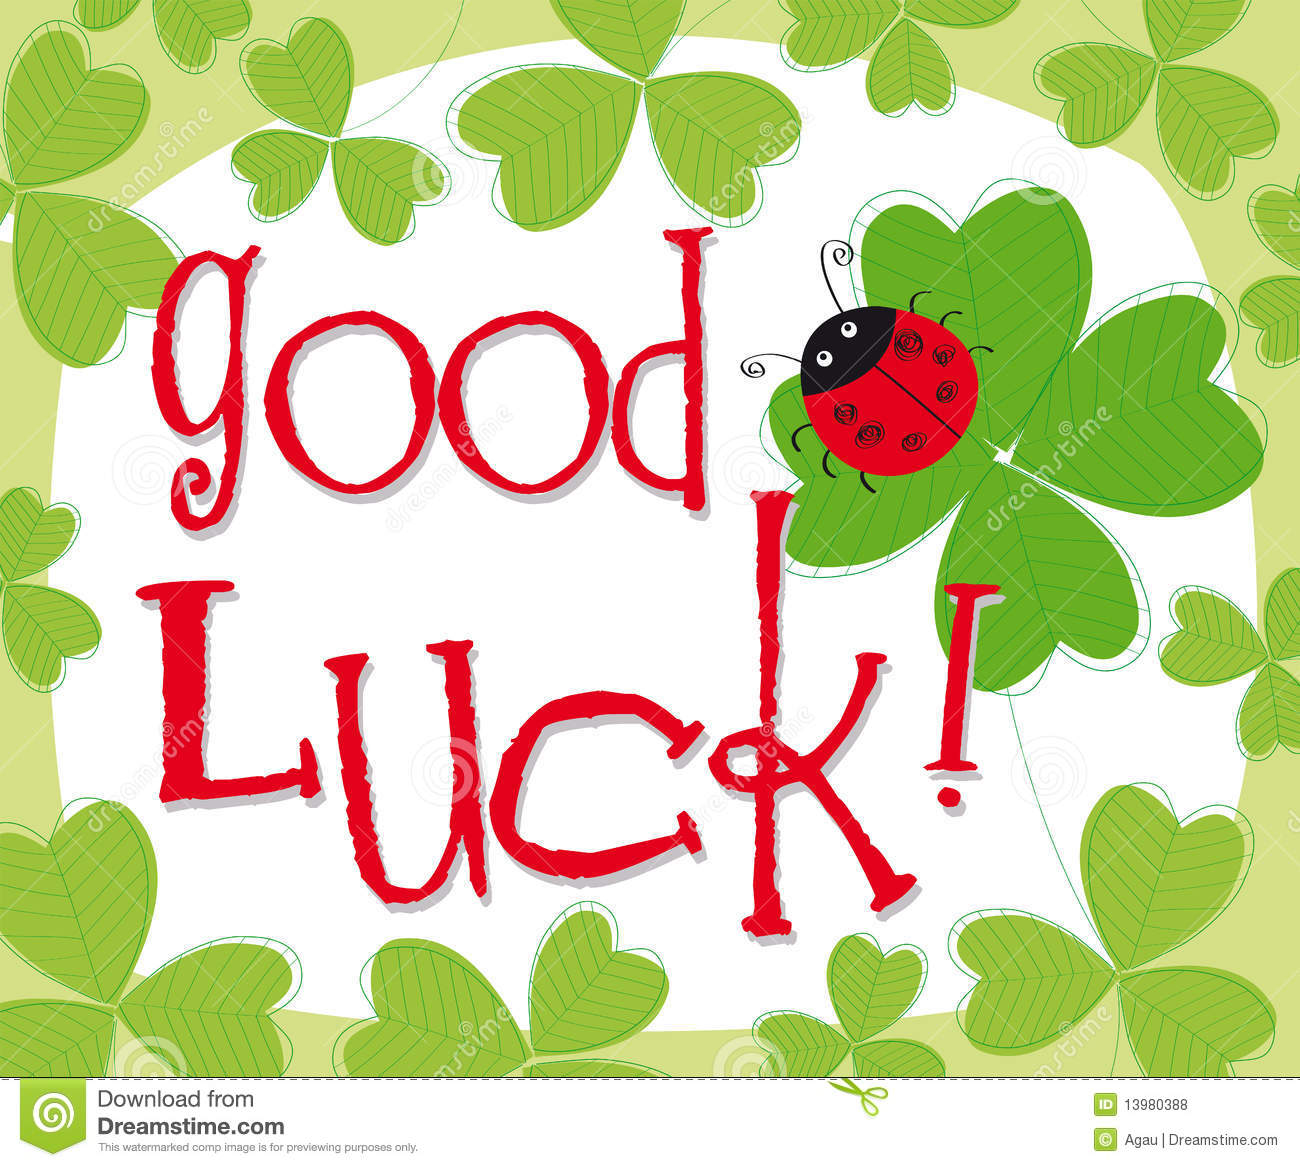 Luck clipart gud Bad Stock images good Image: